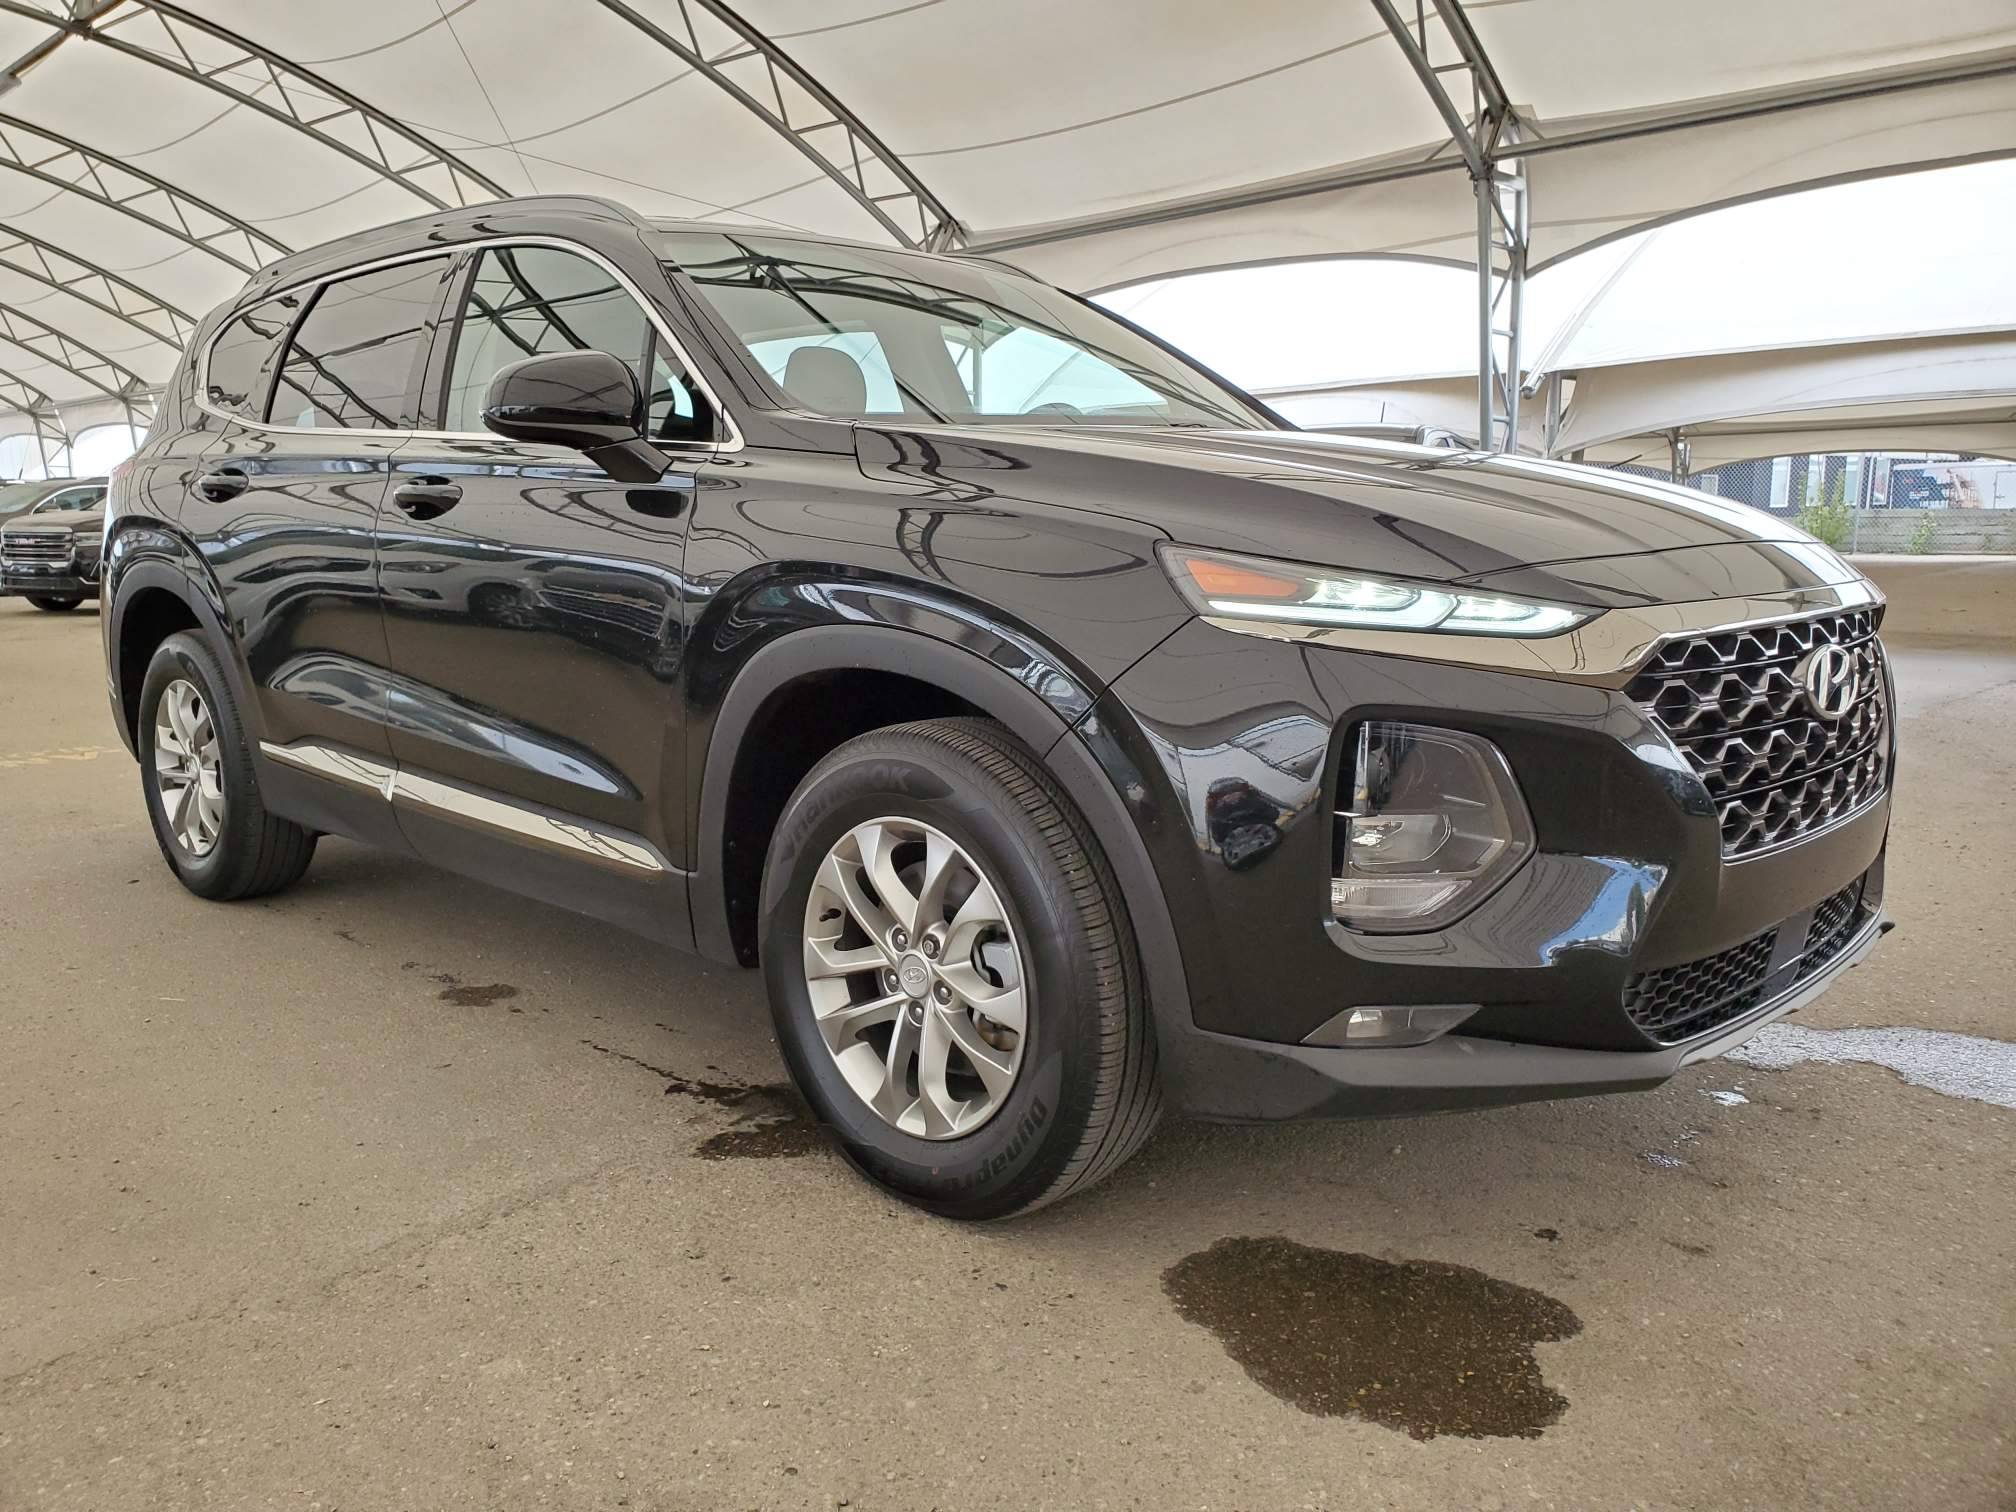 used 2019 Hyundai Santa Fe car, priced at $26,143